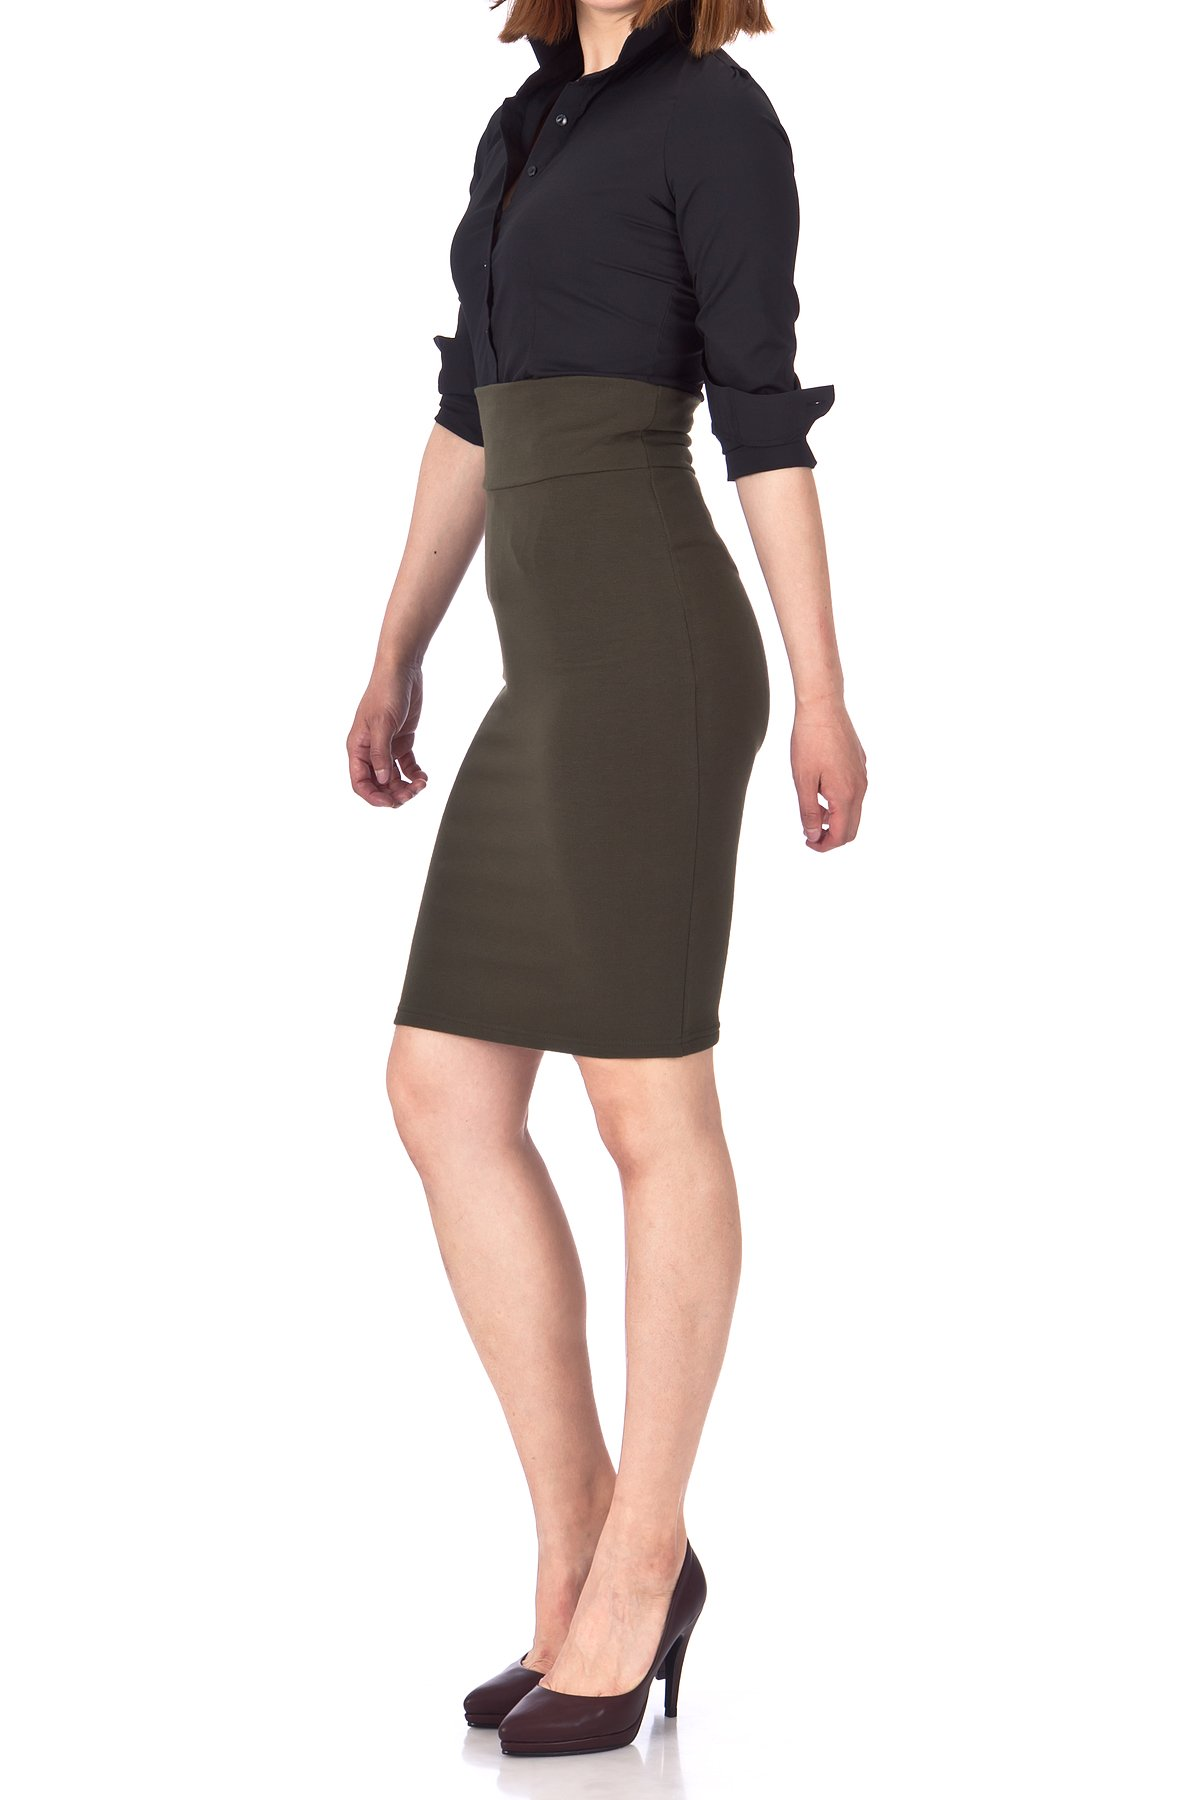 Every Occasion Stretch Pull on Wide High Waist Bodycon Pencil Knee Length Midi Skirt Khaki 03